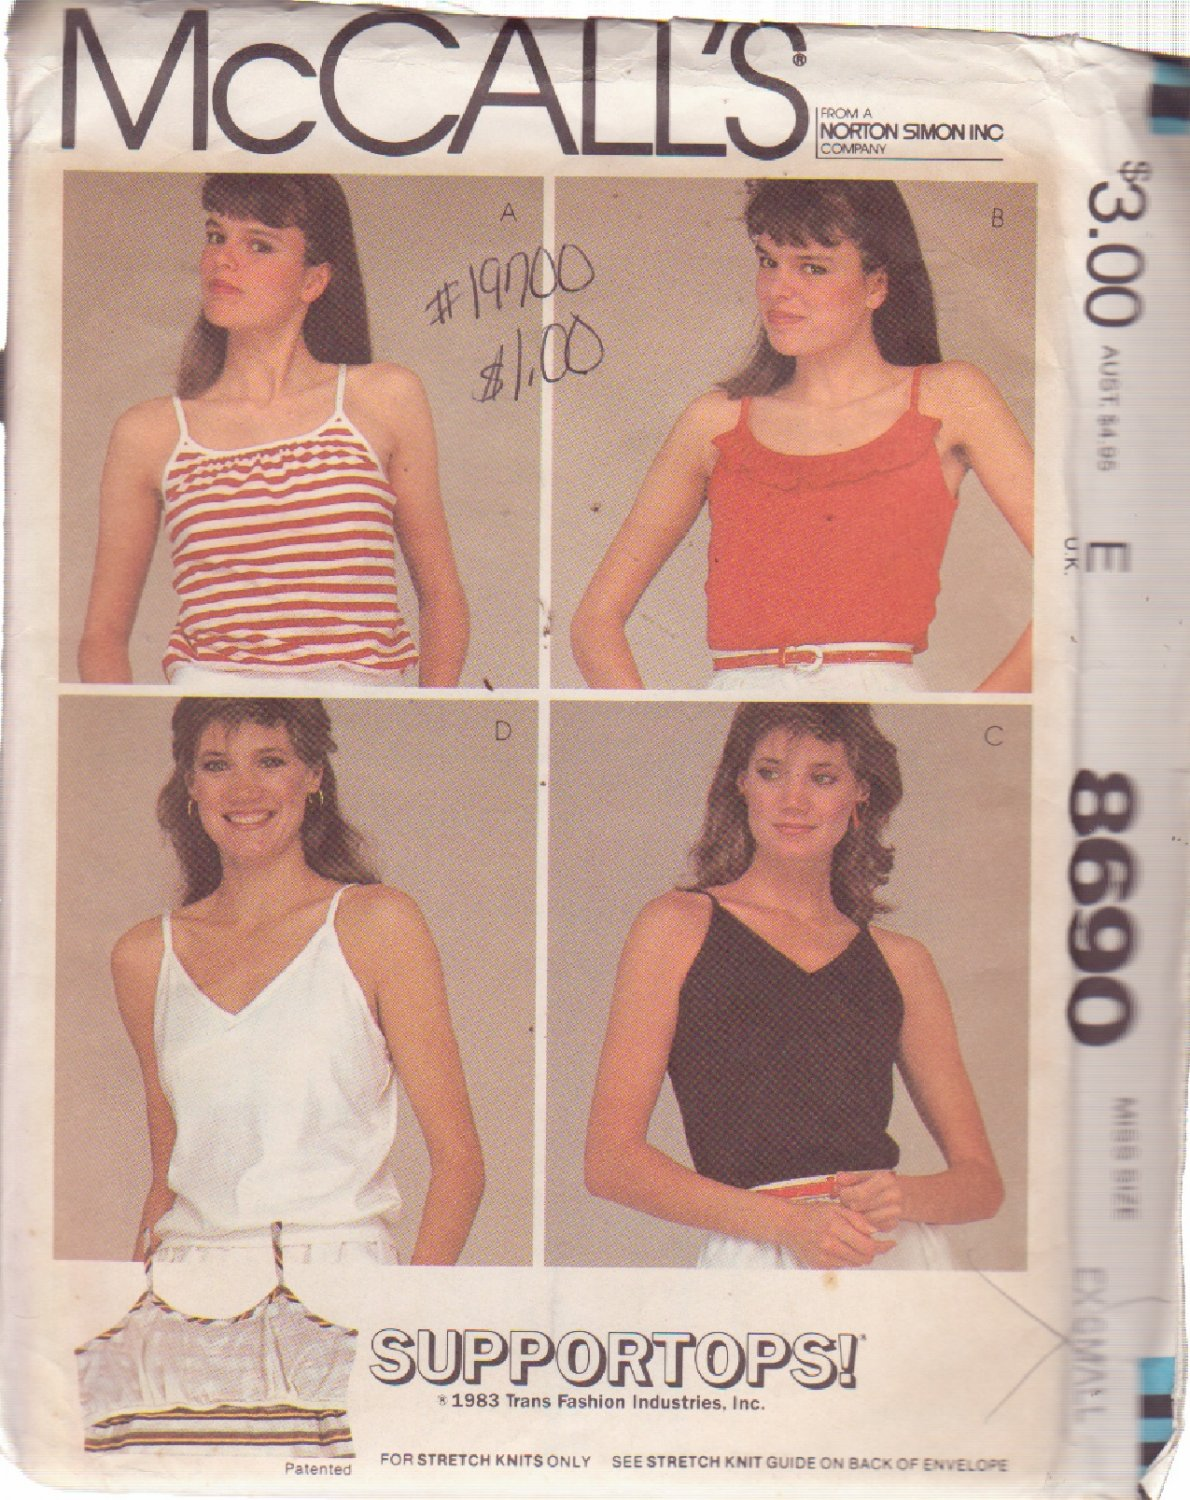 McCALL'S PATTERN 8690 size extra small 6/8 MISSES' SUPPORT TOPS IN 4 VARIATIONS